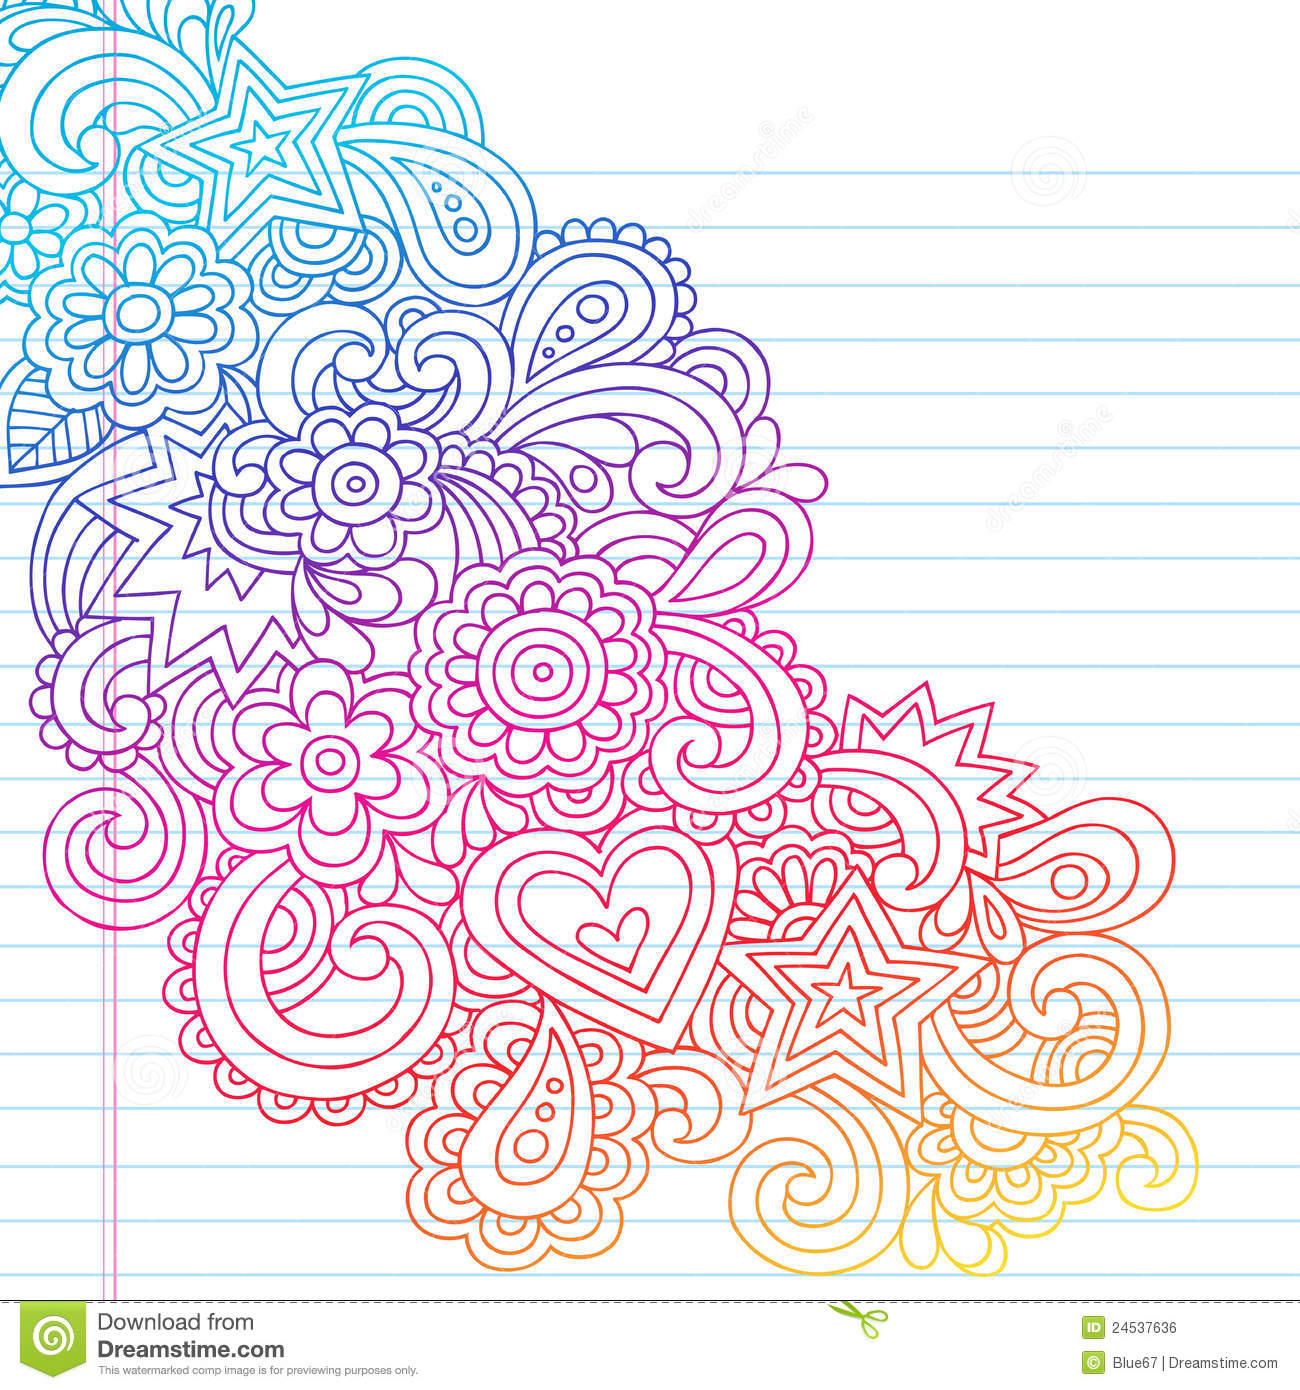 Abstract Psychedelic Notebook Doodles Royalty Free Stock Image - Image ...